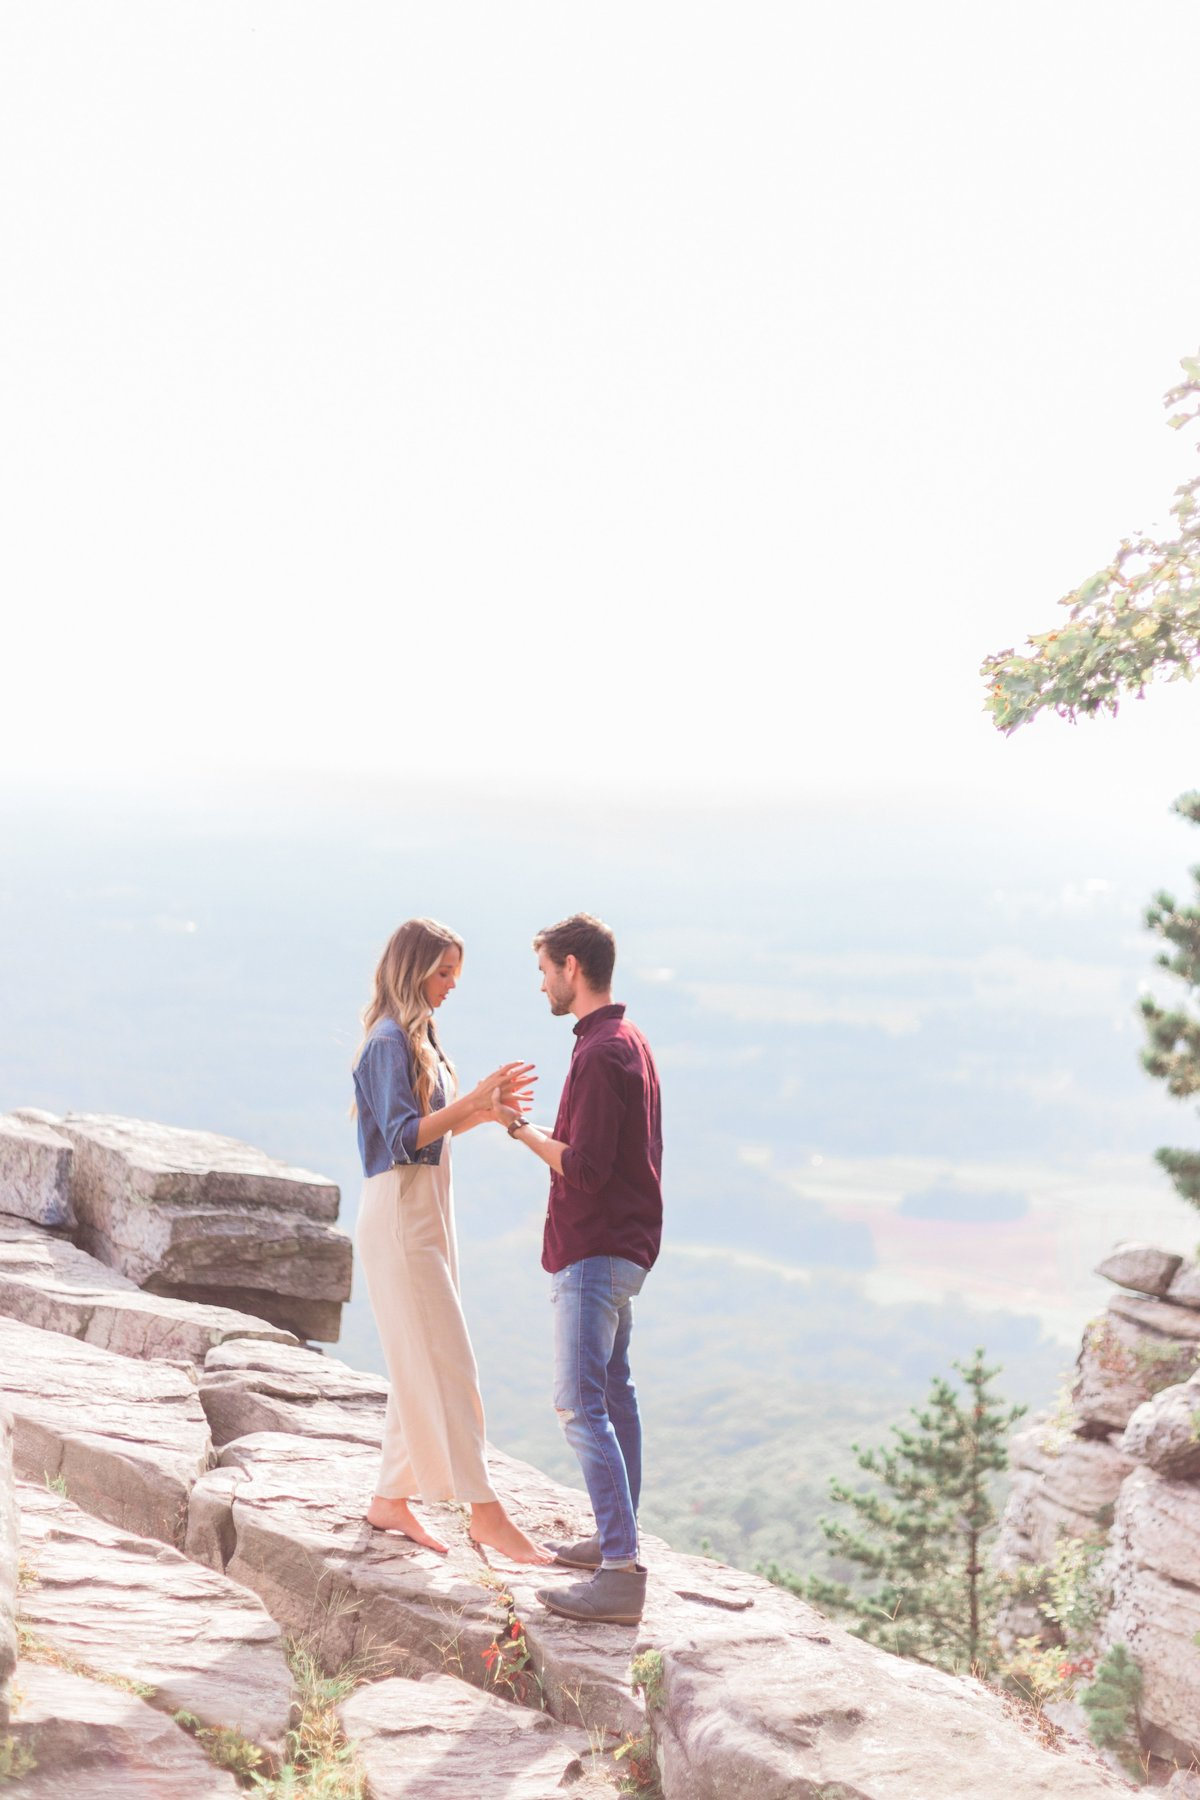 boone-engagement-session-destination-wedding-photographer-36